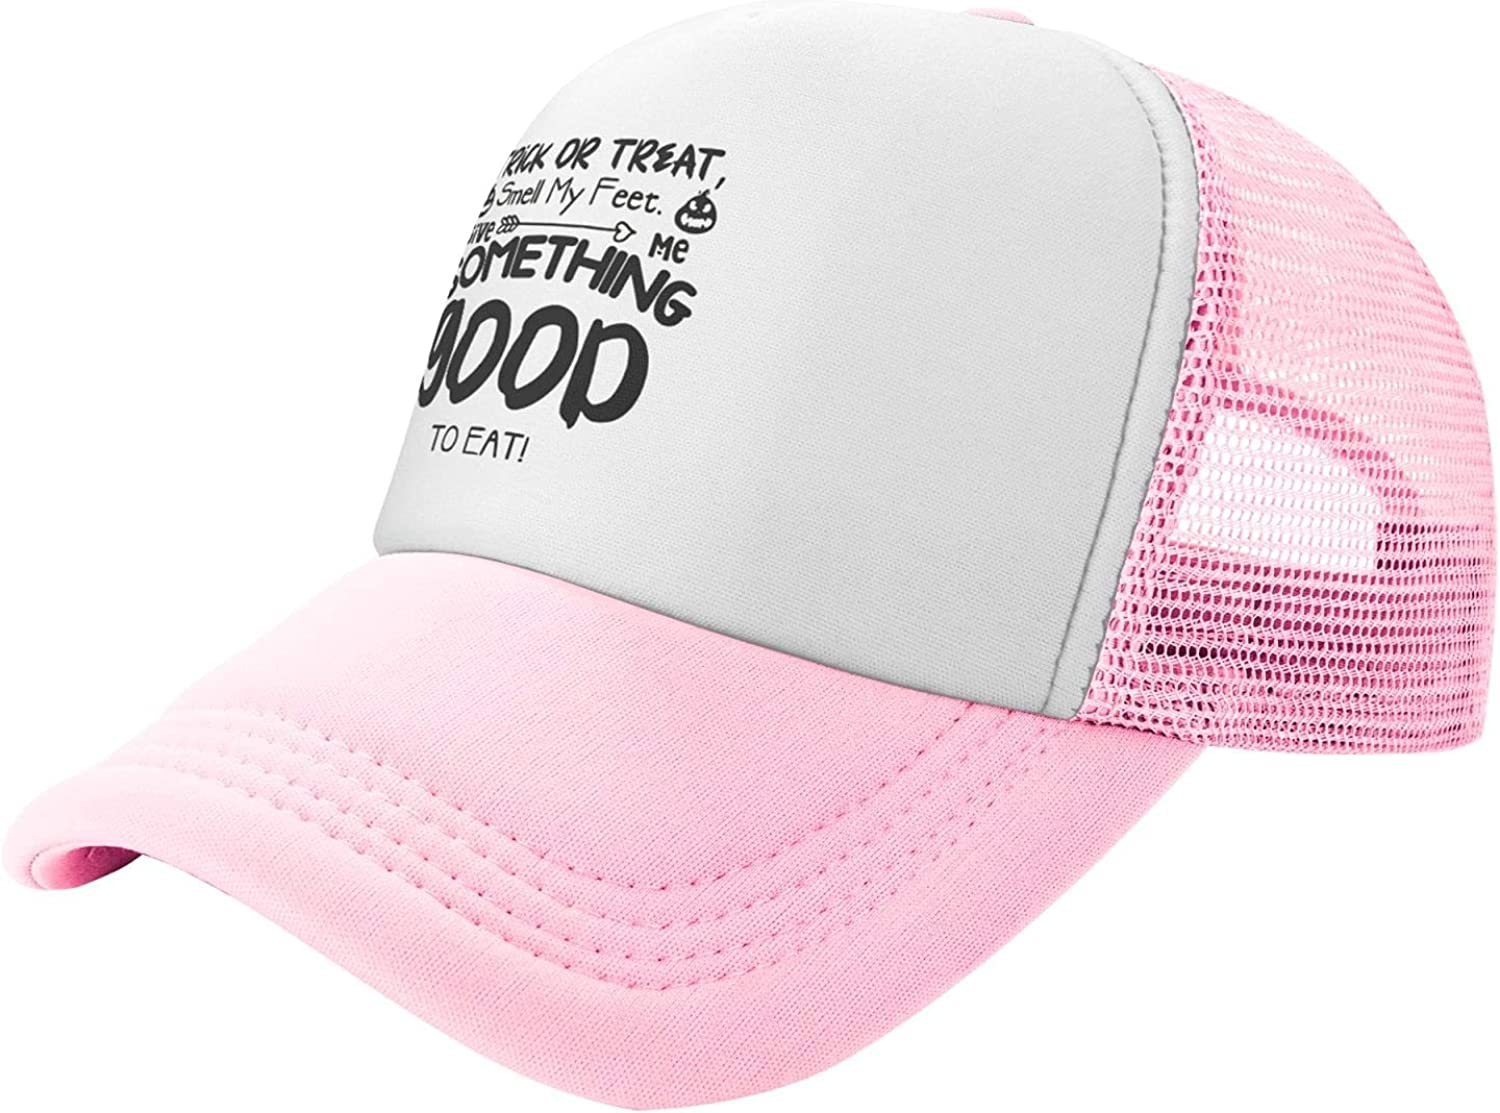 Summer Mesh Baseball Store Cap Trick Finally resale start Or Treat Give Me So Feet Smell My